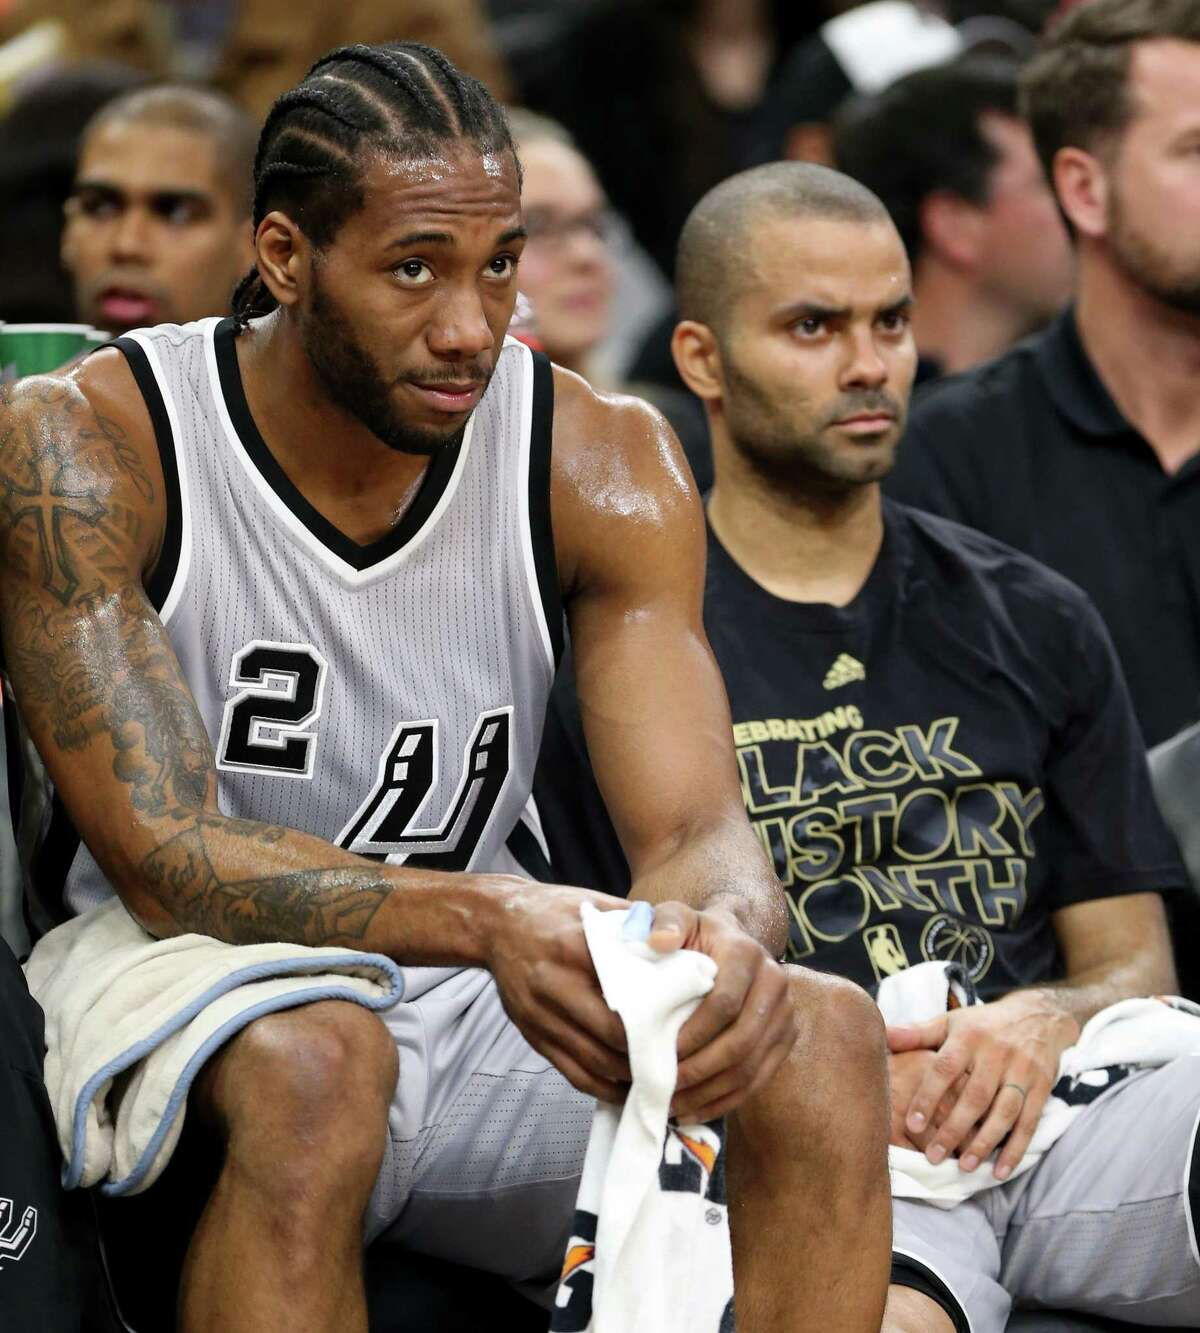 San Antonio Spurs' Kawhi Leonard and Tony Parker watch action against the Denver Nuggets from the bench Saturday Feb. 4, 2017 at the AT&T Center.